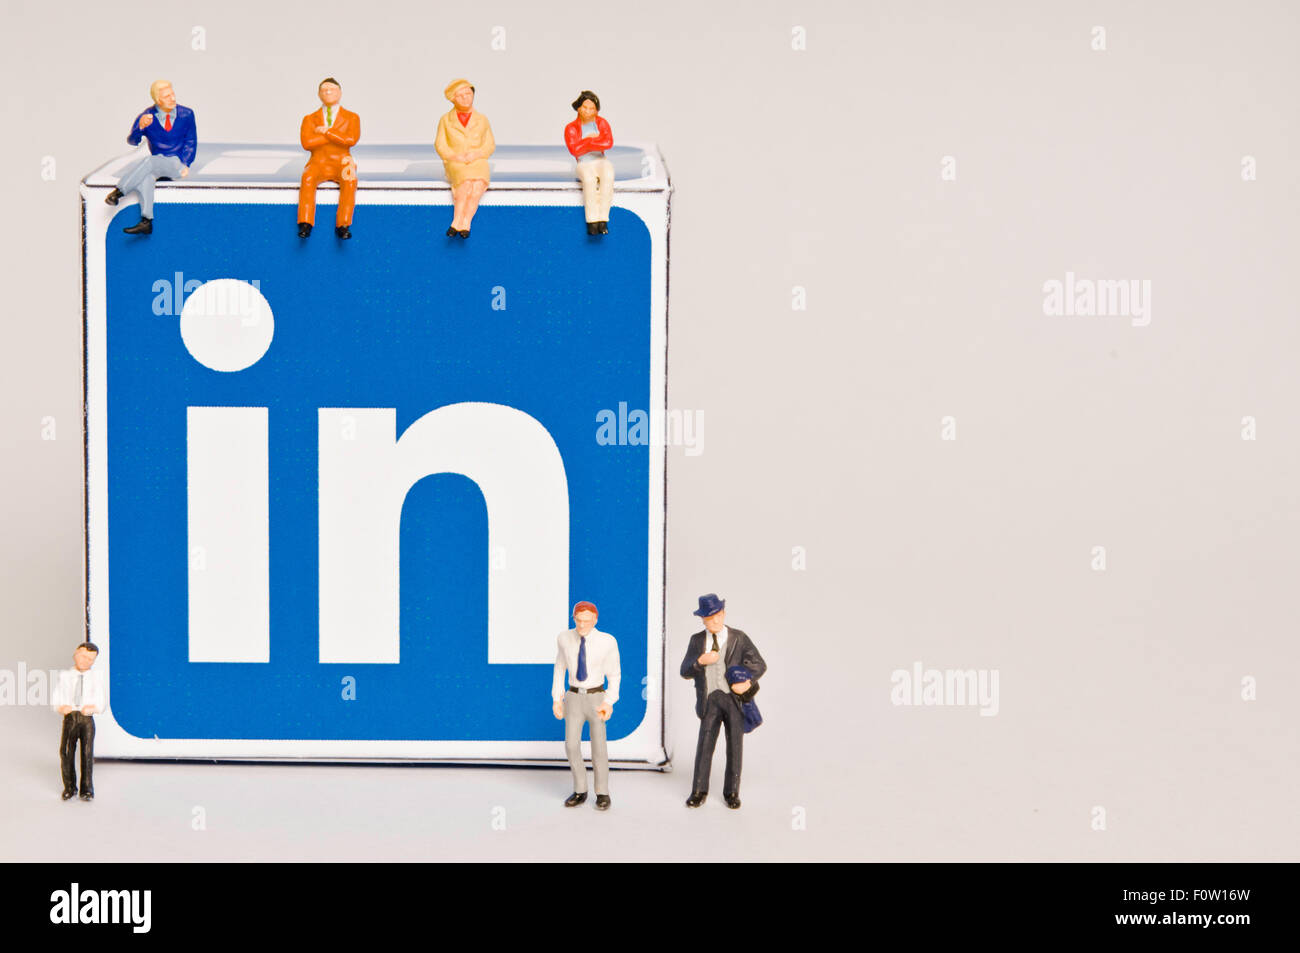 miniature figurines and Linkedin logo, social media, social interactions and social relationships concept - Stock Image